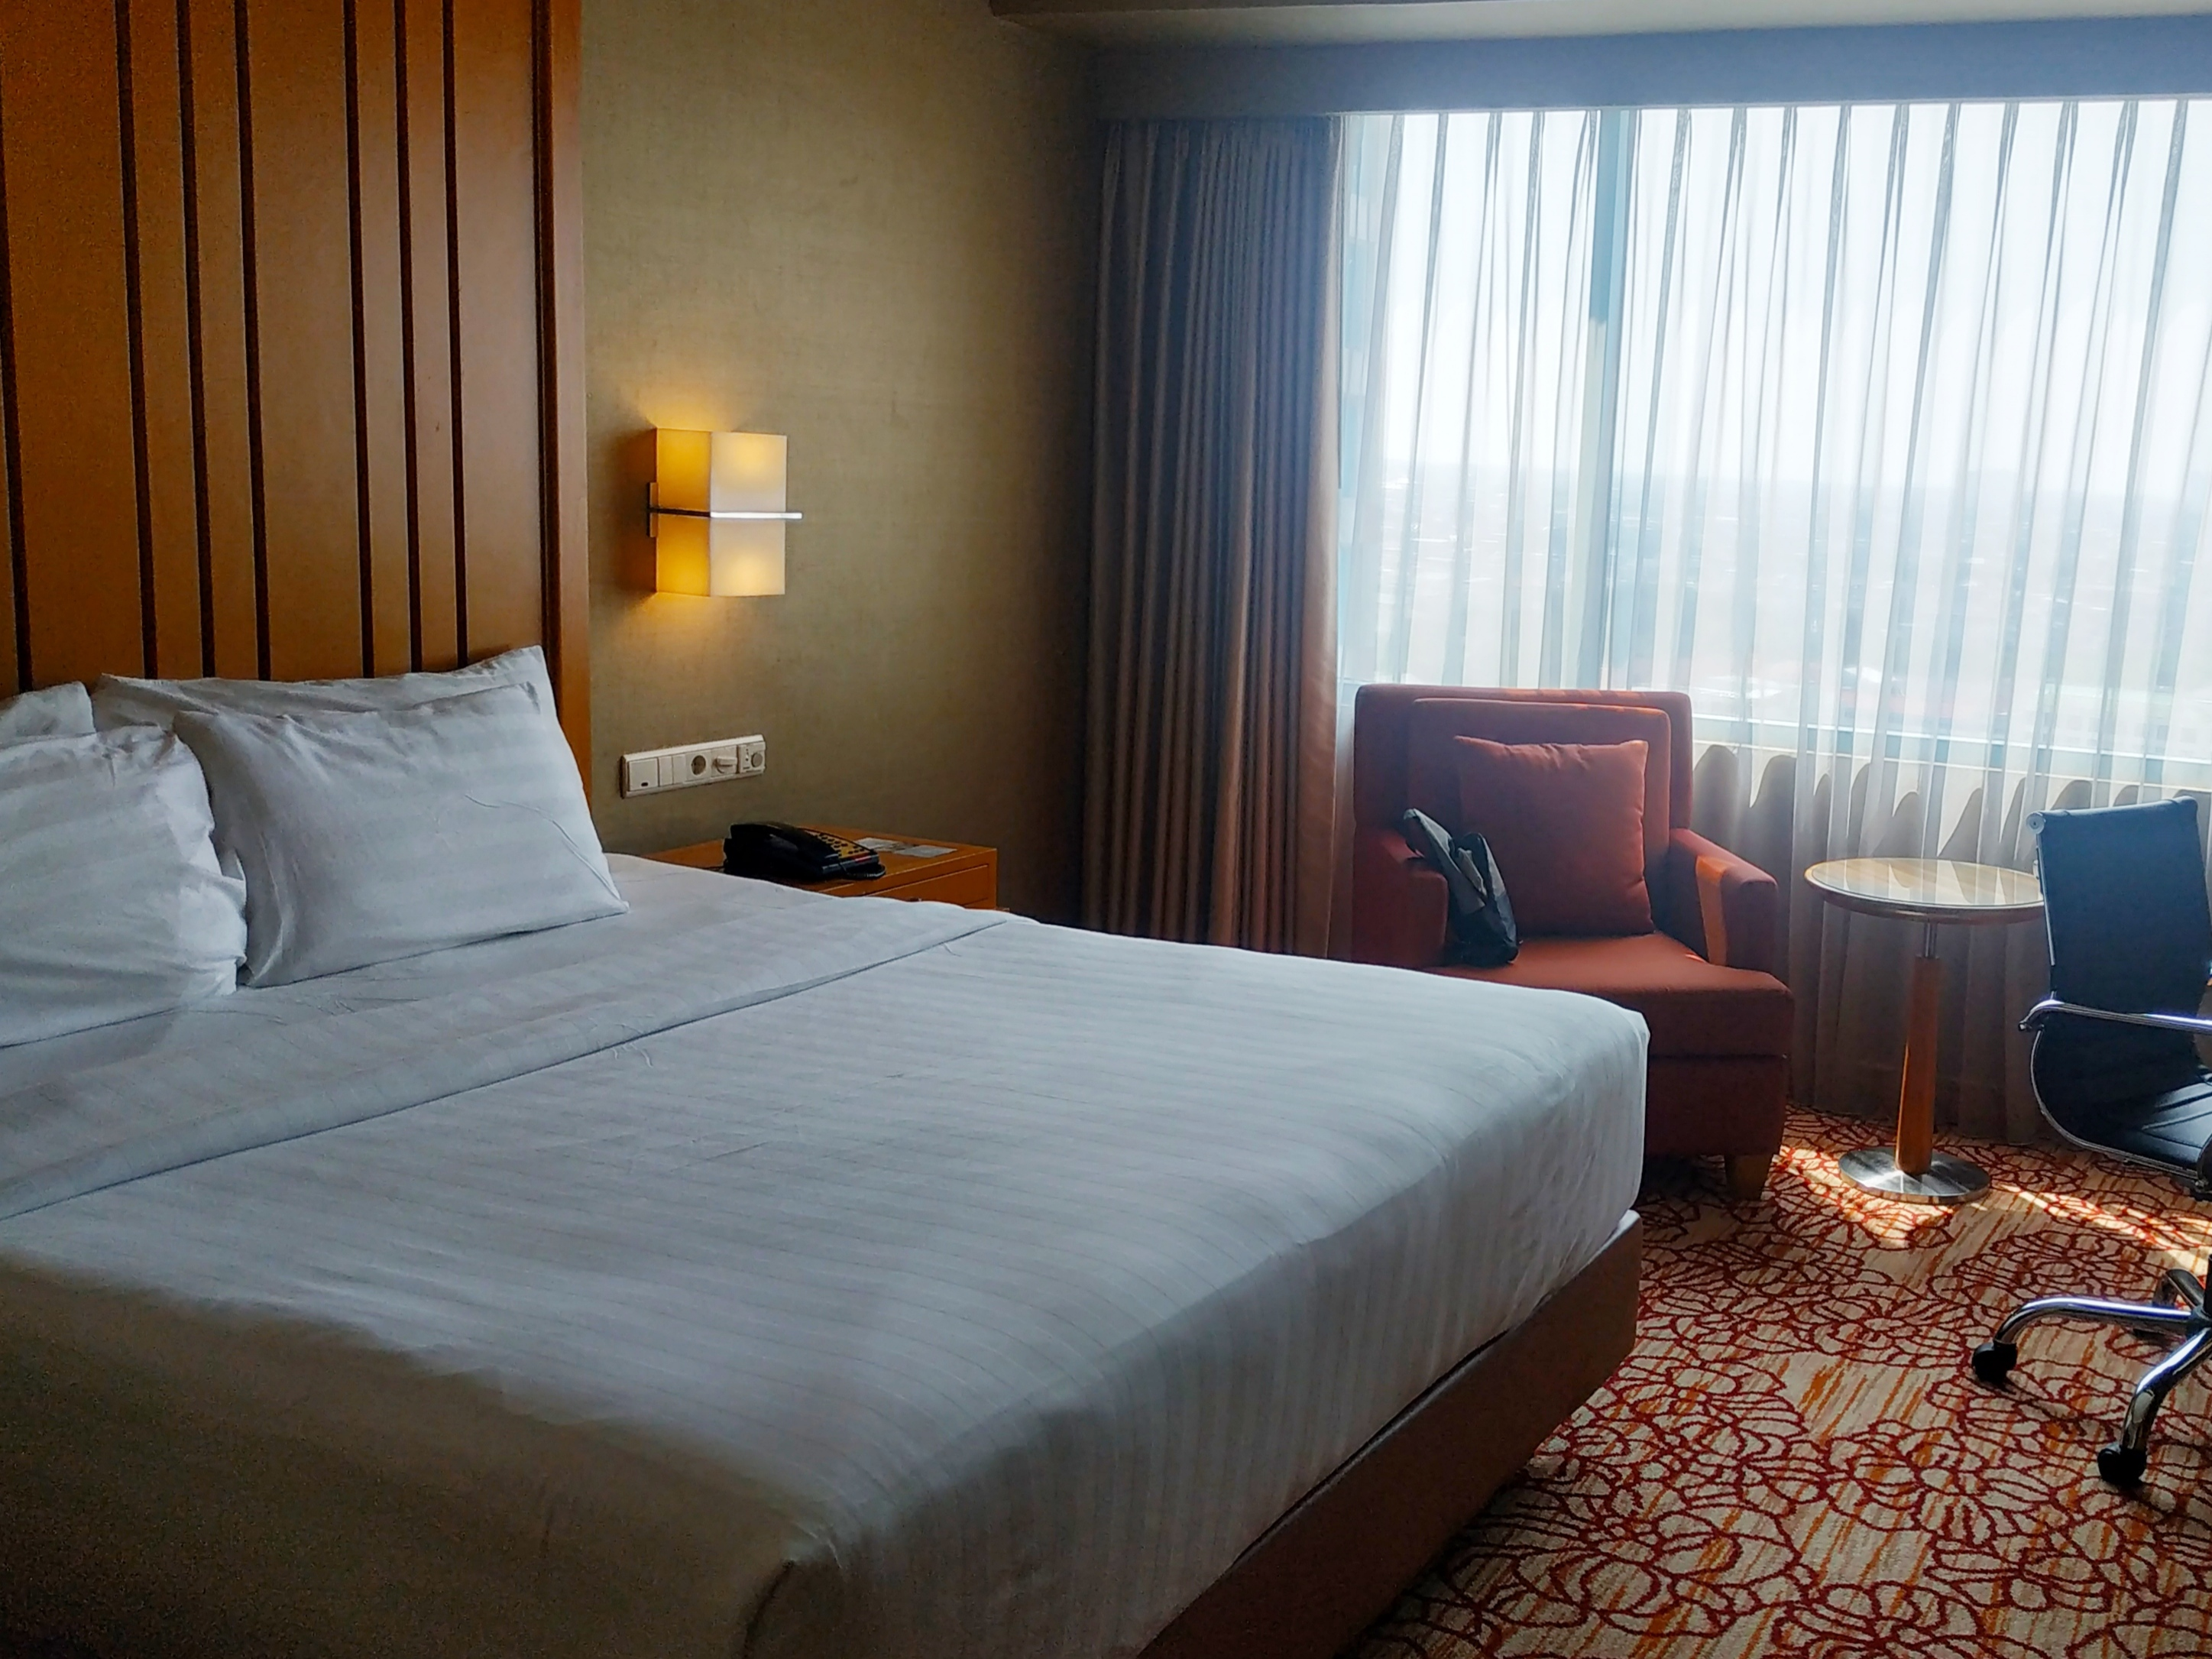 Mother of cat - [Review Hotel]Staycation ala new normal - Ciputra Deluxe Room